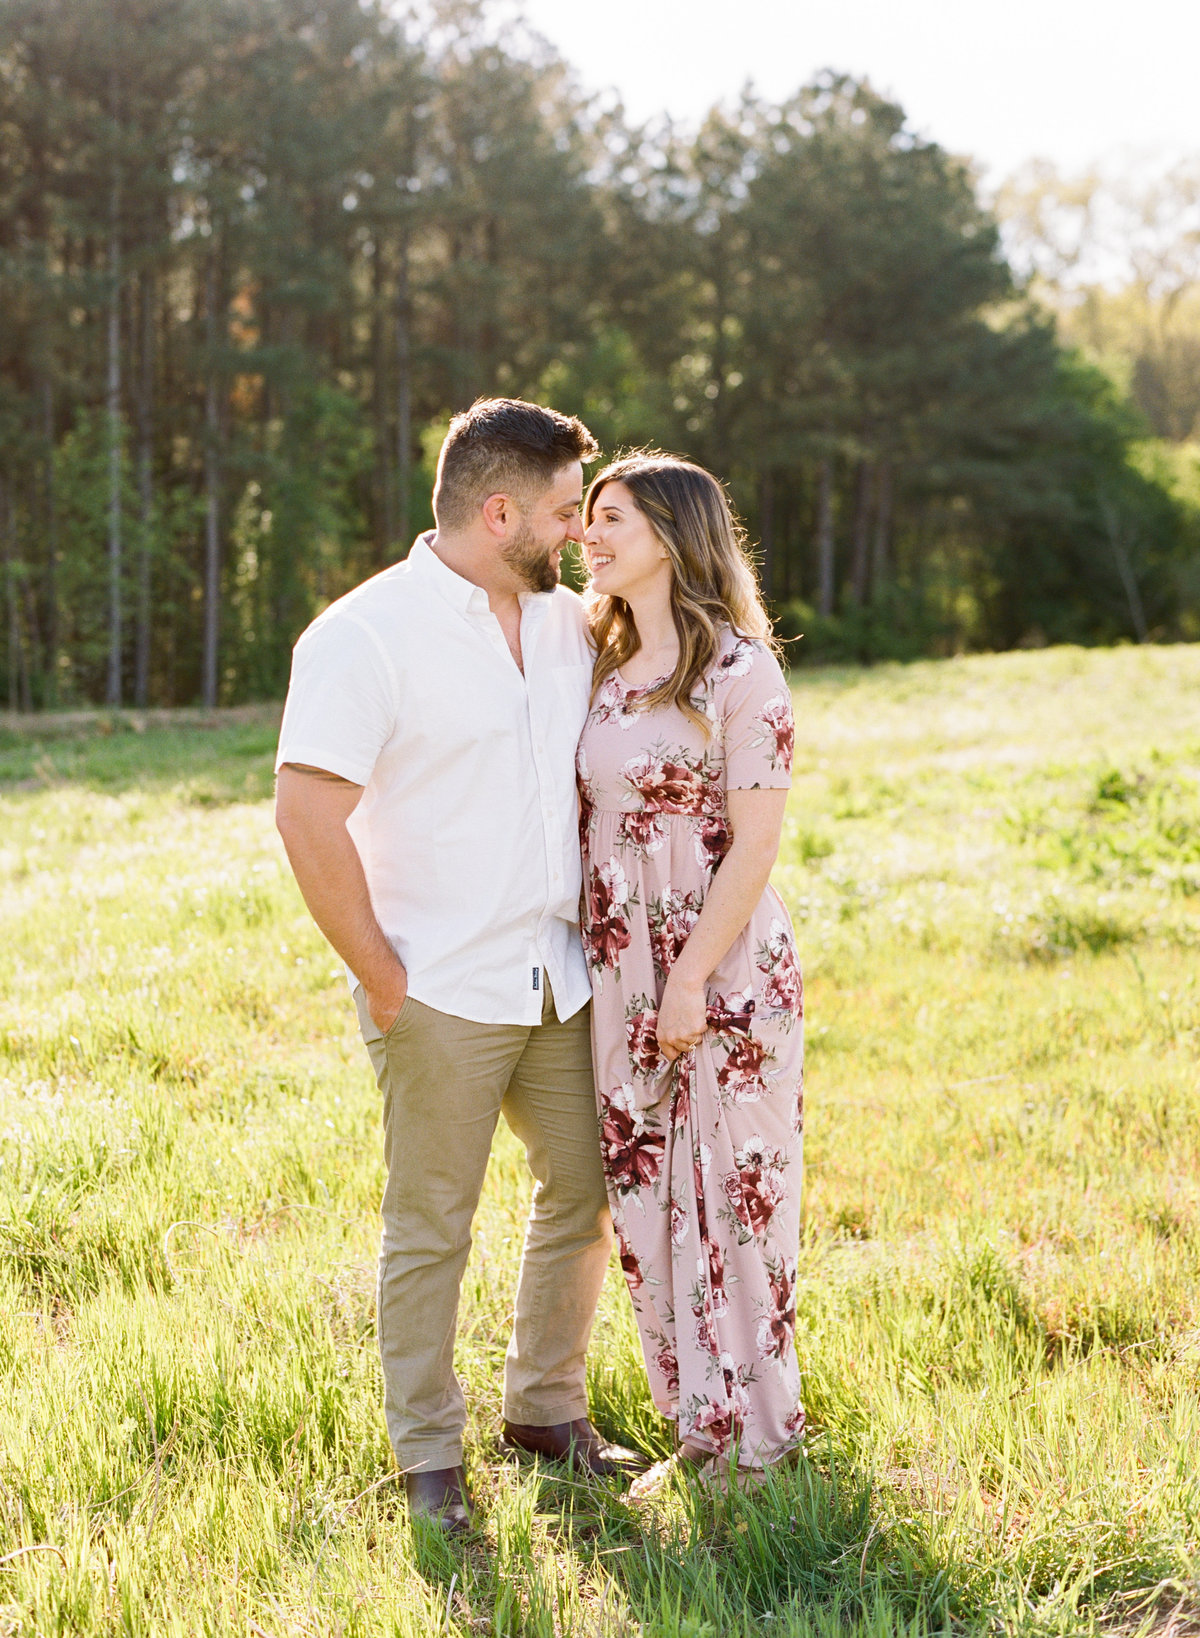 Raleigh engagement photography photo